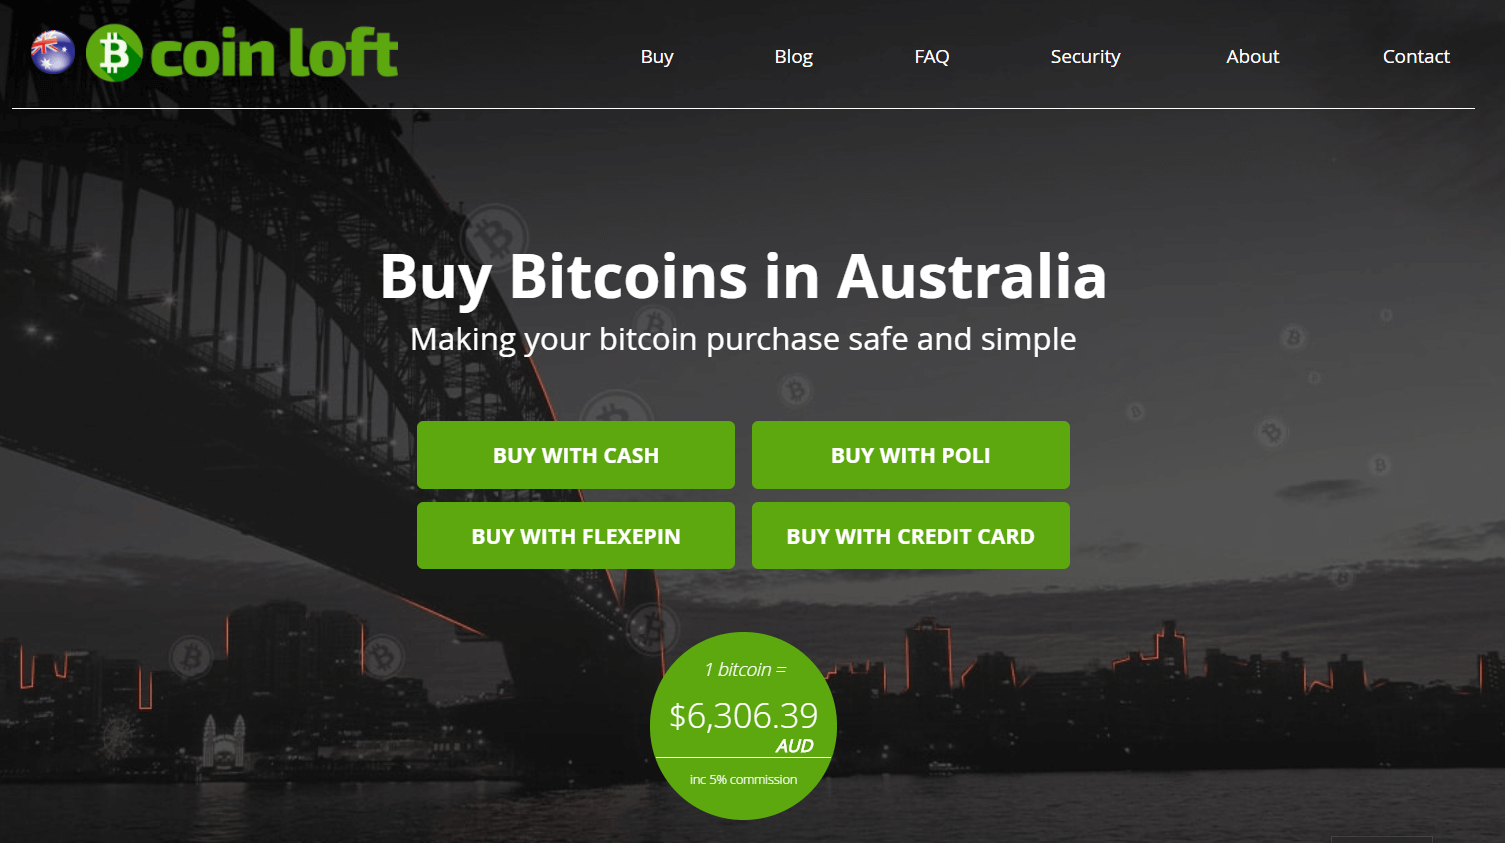 How to buy bitcoin in australia exchanges reviews and faq in australia coinloft offers aud bitcoin purchases through cash deposit credit card flexepin and poli payment methods the fees are somewhat high ccuart Image collections